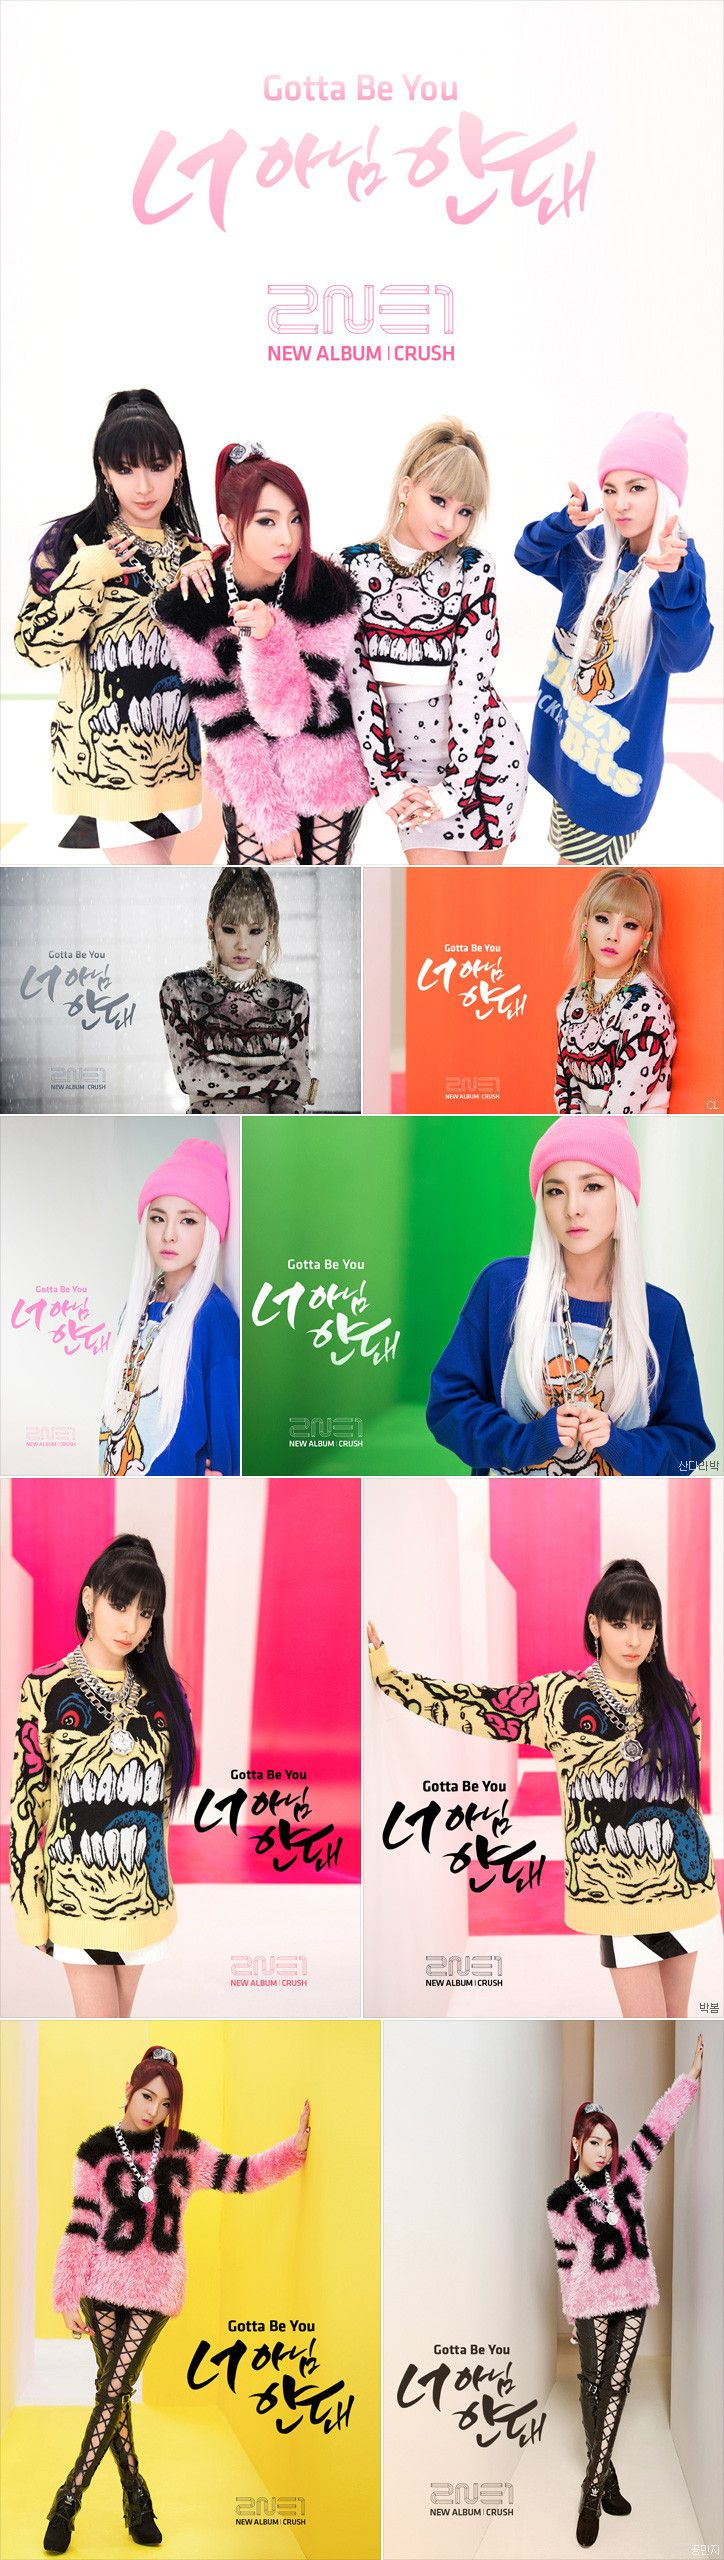 THANK YOU 2ne1 for the past 7 years and I will miss you so much! You were my first group and I will never forget what your music meant to me in the toughest period of my life. THANK YOU!!! You are the #1 girl group of all time!